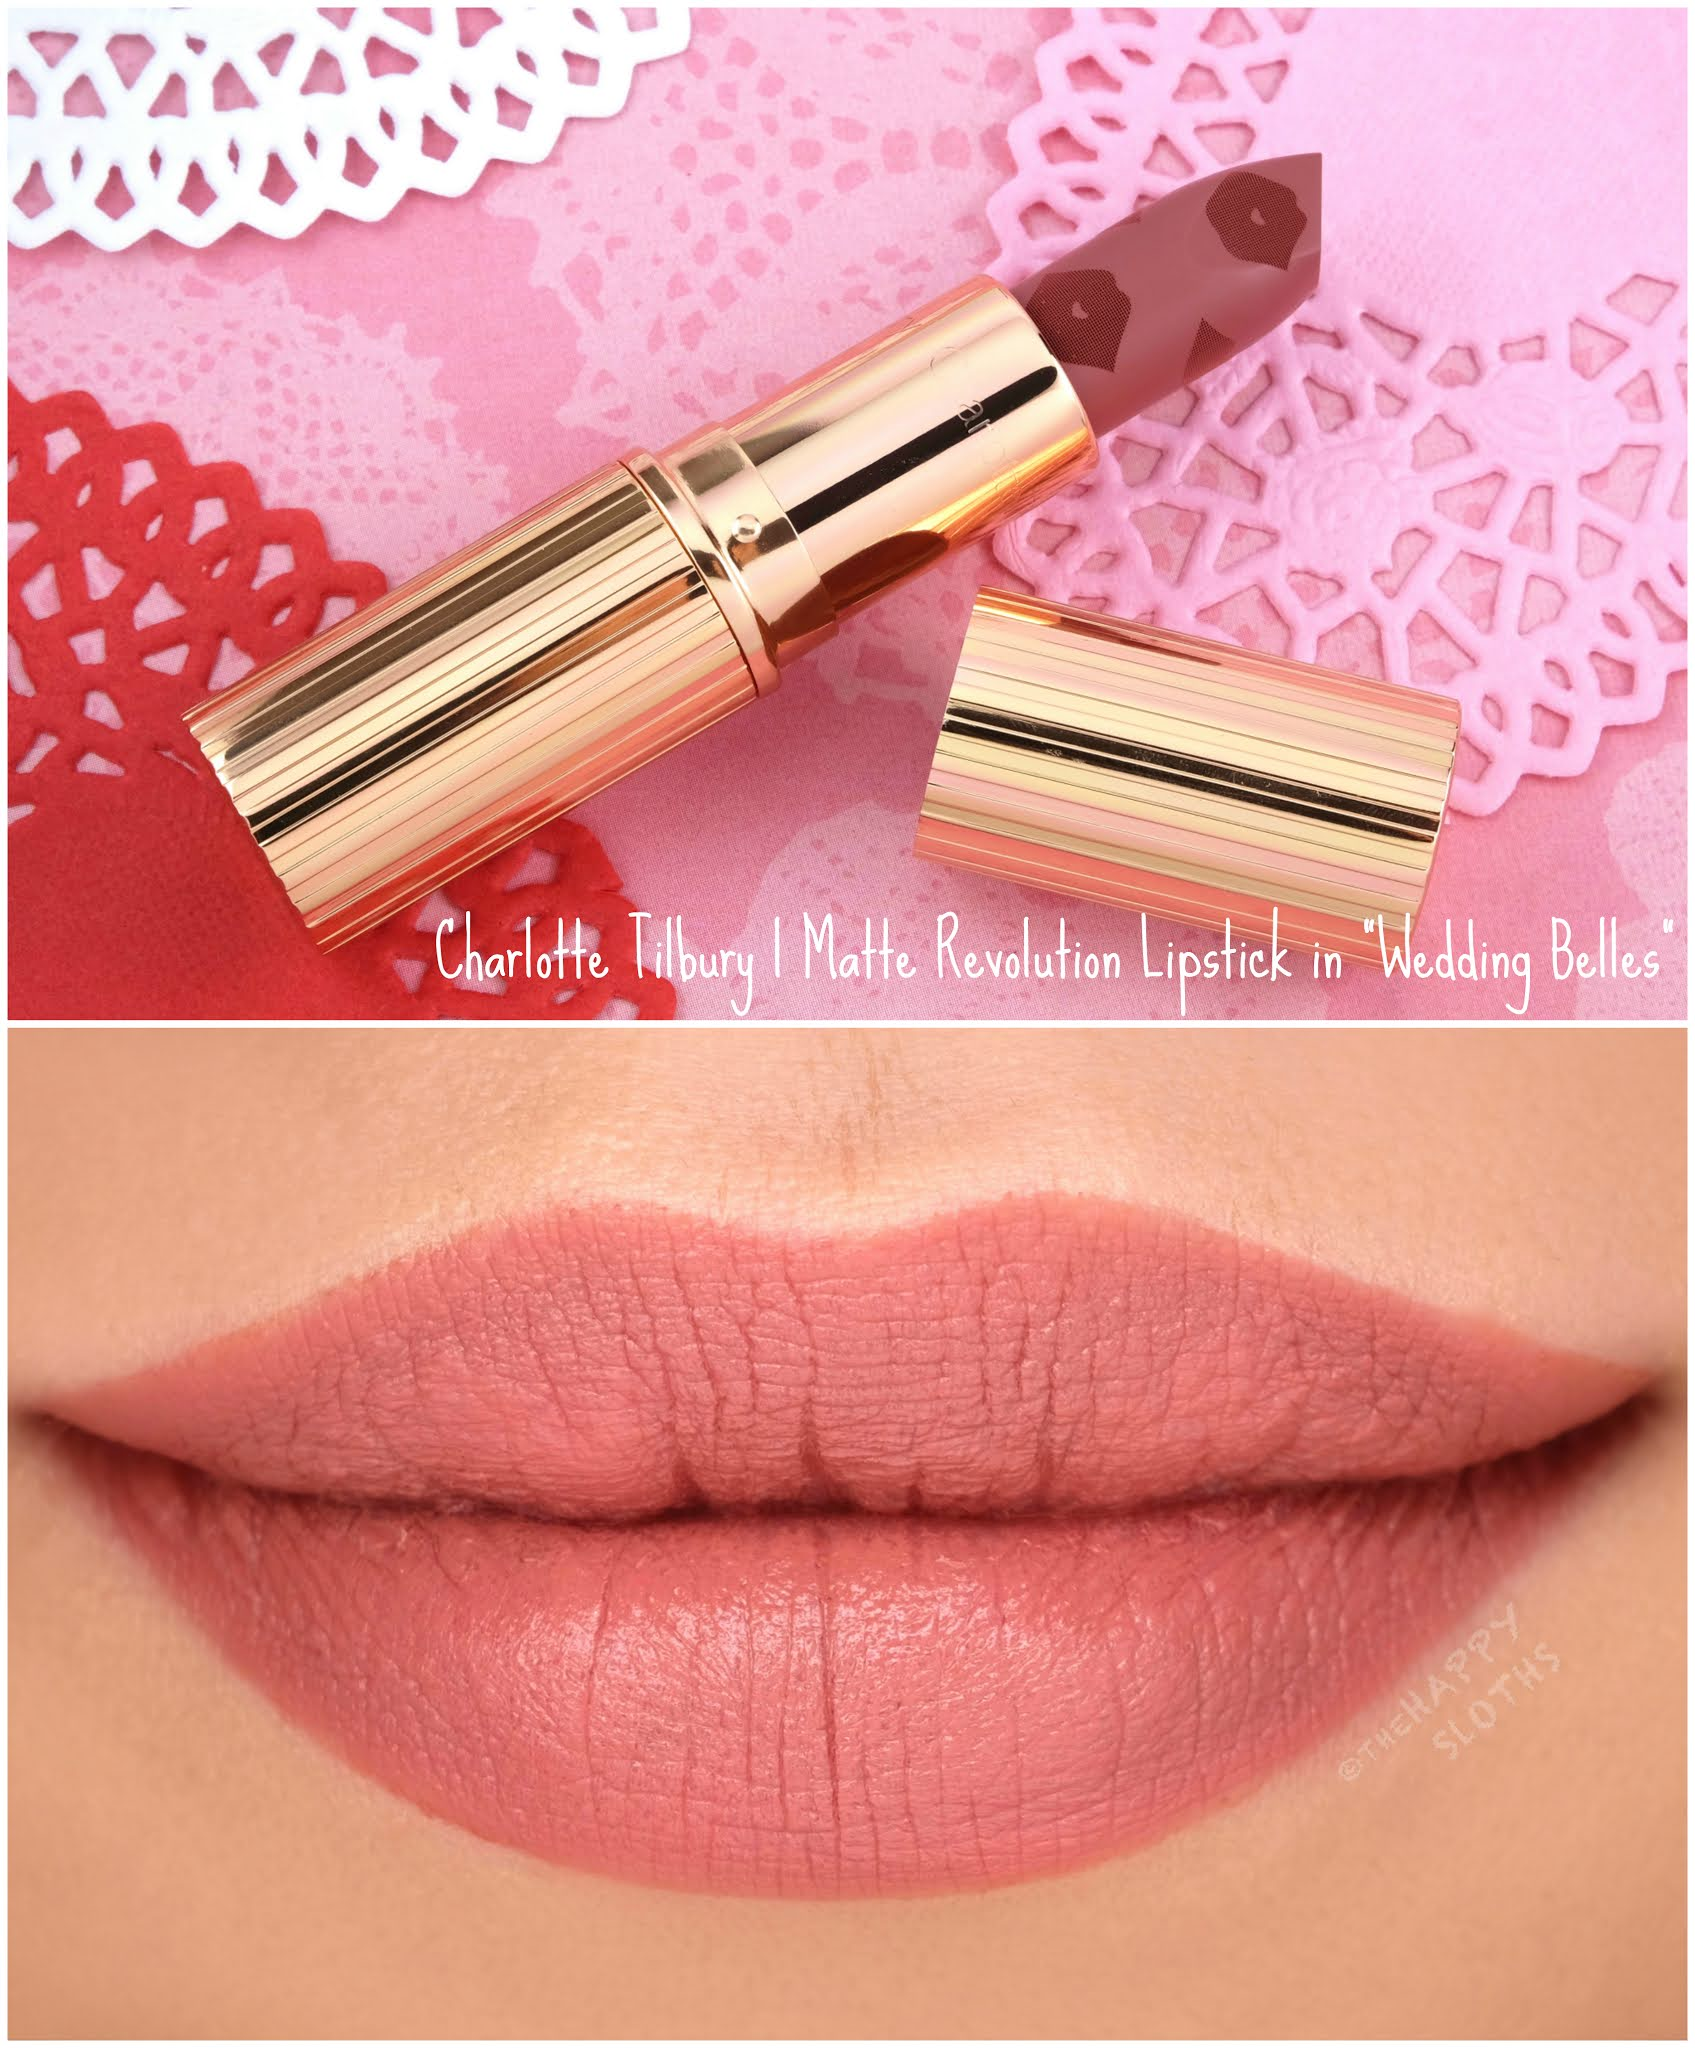 "Charlotte Tilbury | *NEW* Love Filter Matte Revolution Lipstick in ""Wedding Belles"": Review and Swatches"